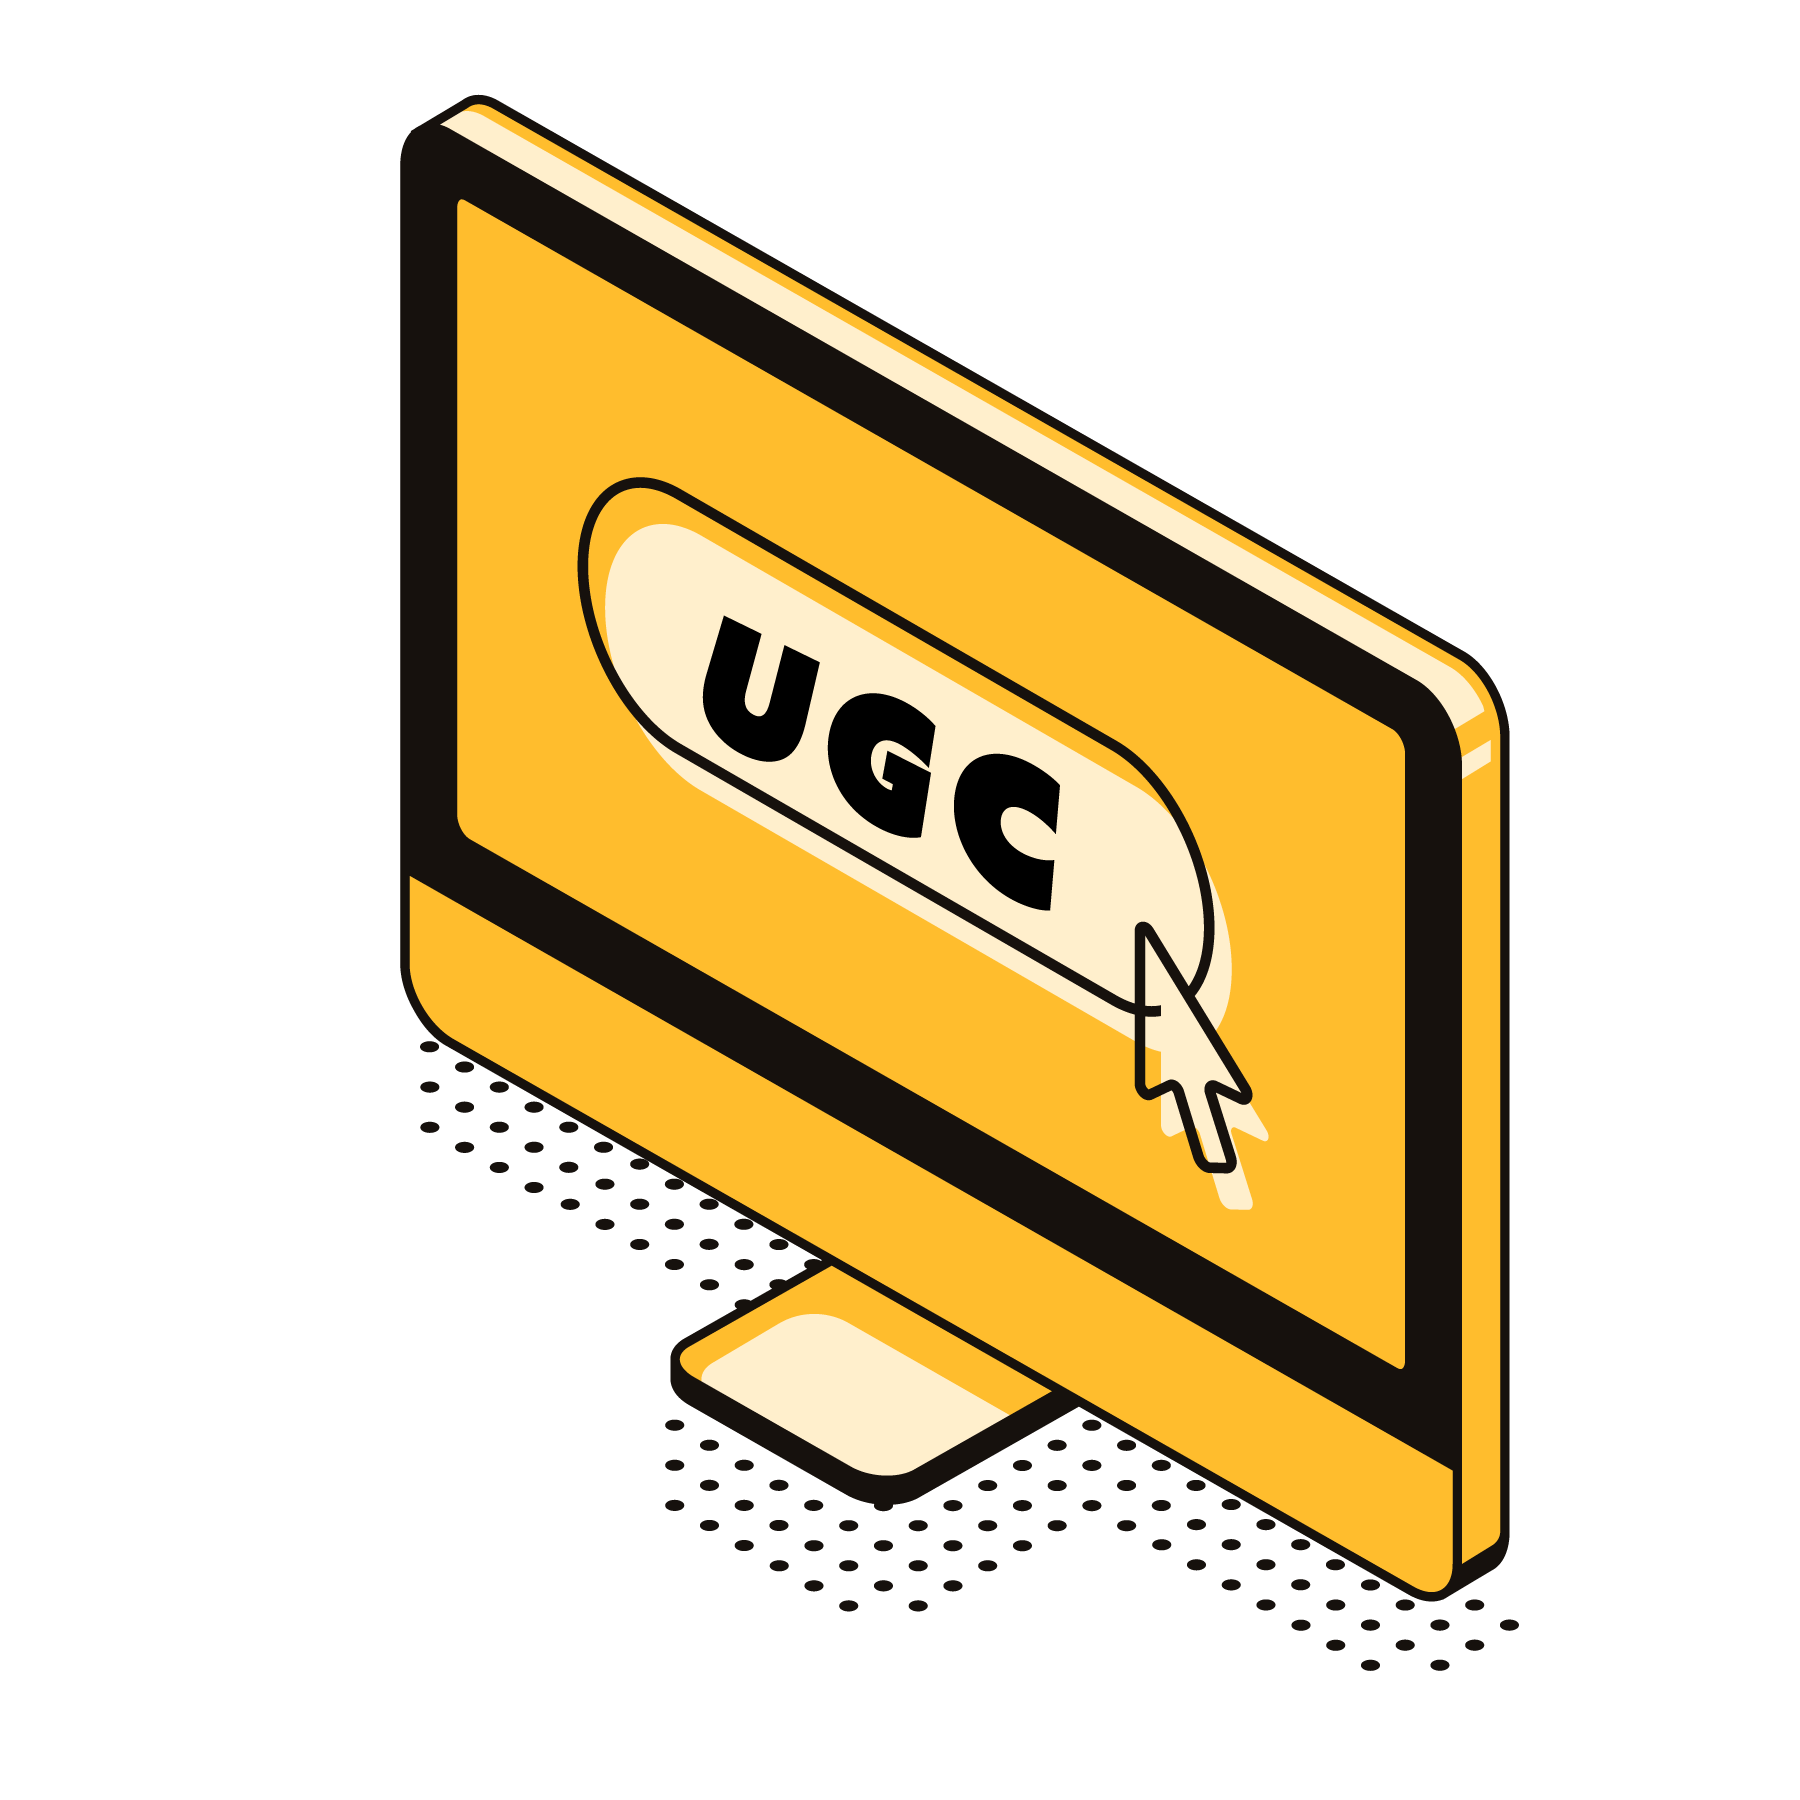 UGC Moderation Specialist for Global Brands